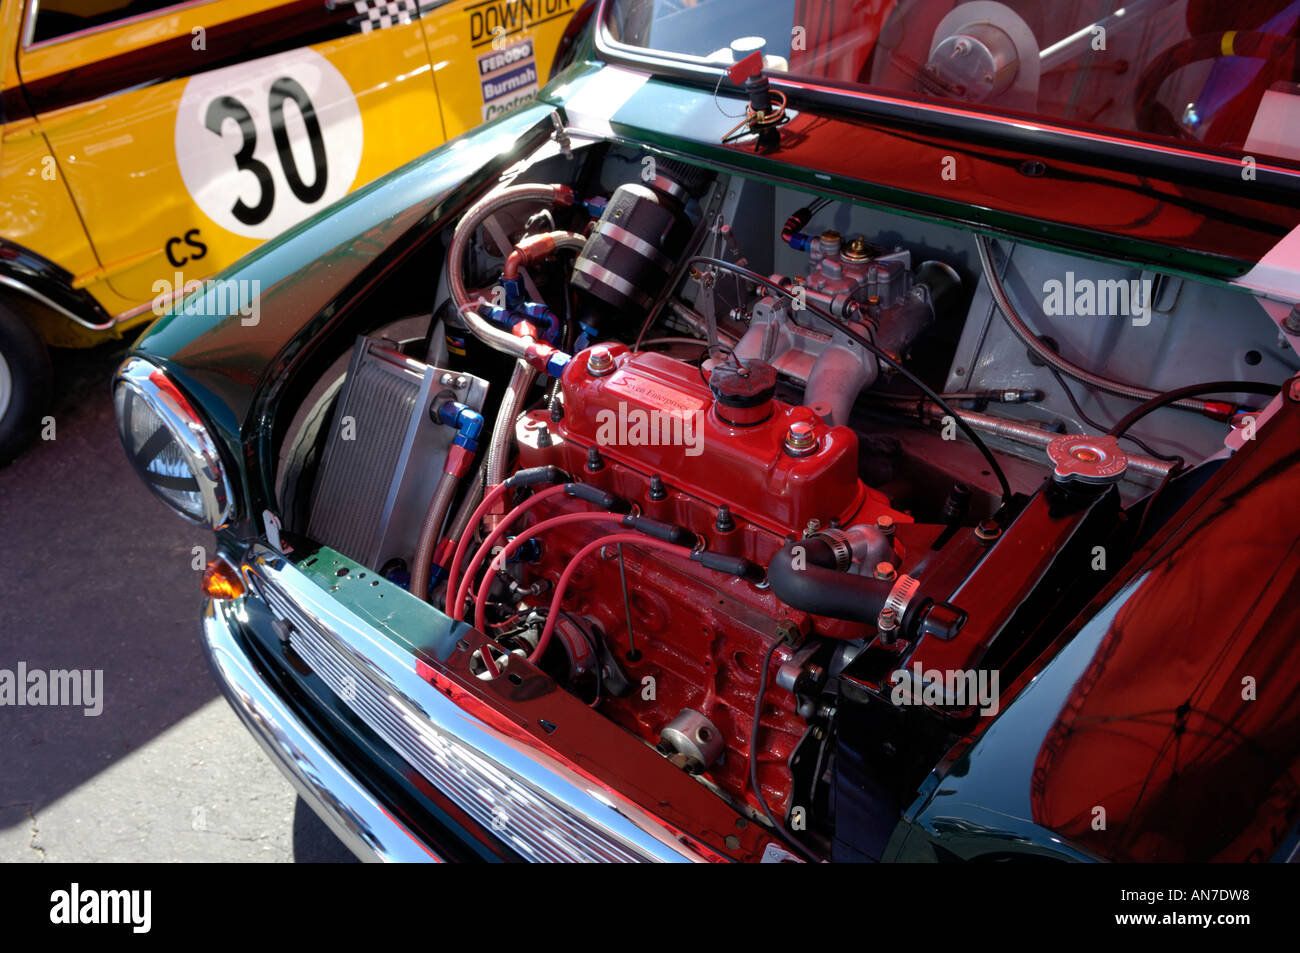 Mini Cooper Dashboard >> 1965 Austin Mini Cooper S with hood open and engine visible Stock Photo: 8821079 - Alamy